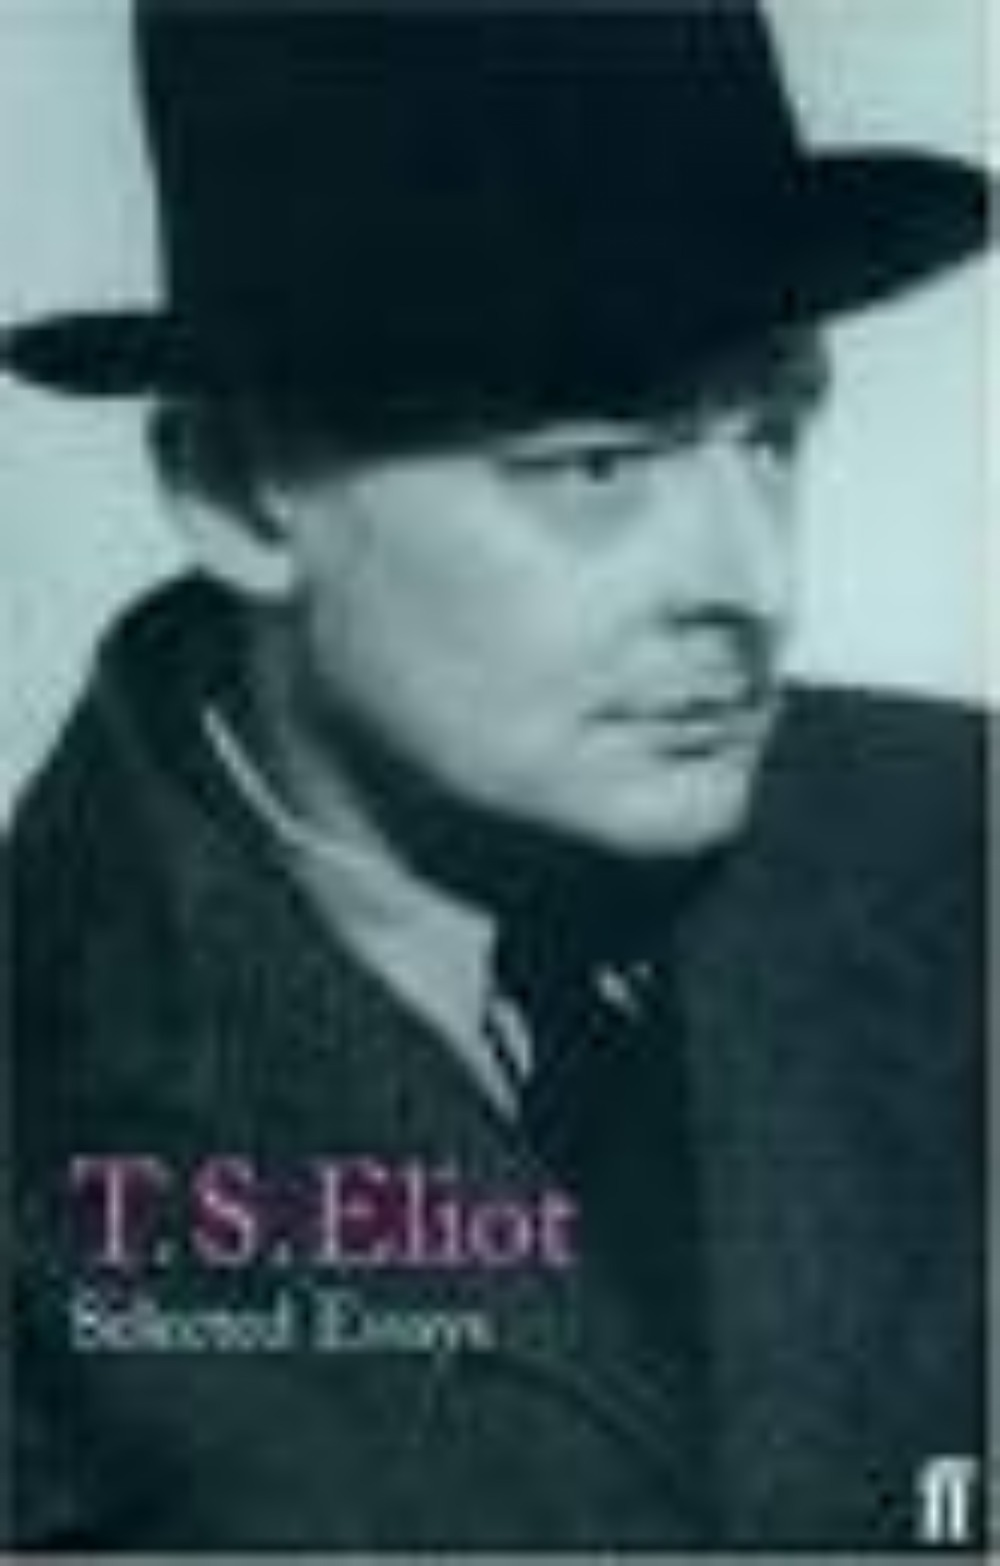 ts eliot essay on john donne T s eliot, review of donne, and often cowley which fits johnson's general observations on the metaphysical poets in his essay on cowley.